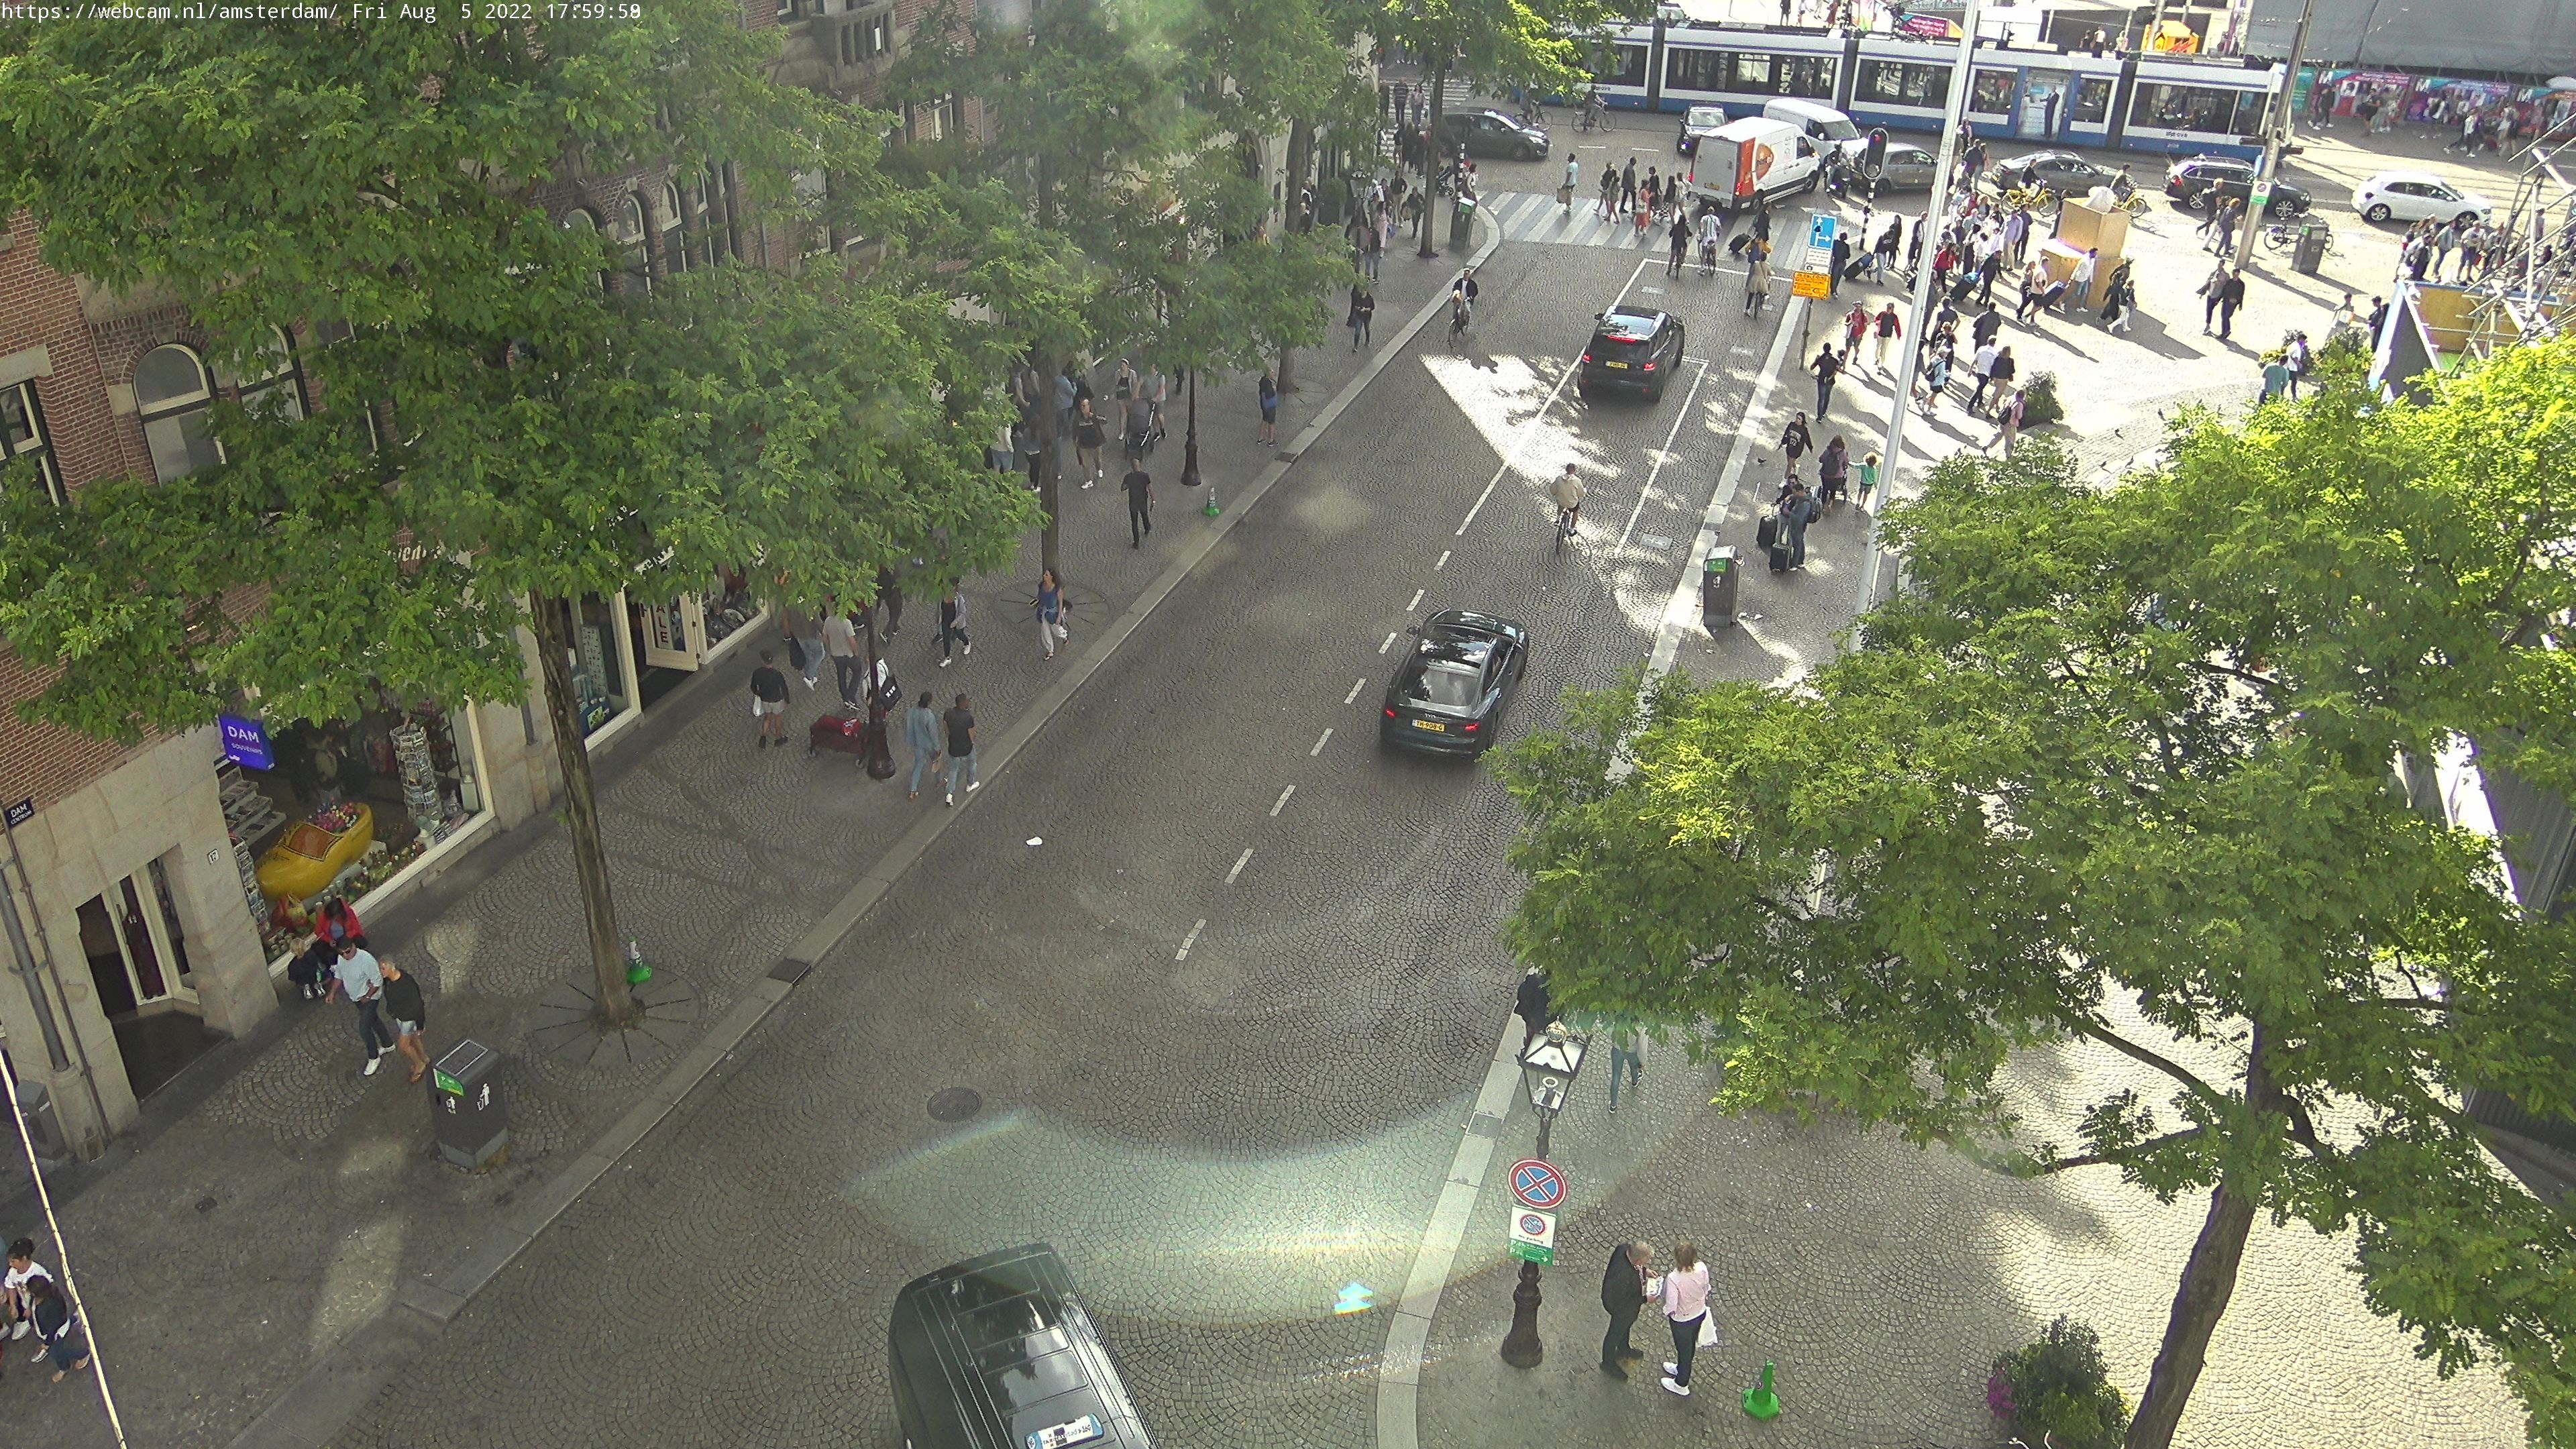 webcam live view Amsterdam